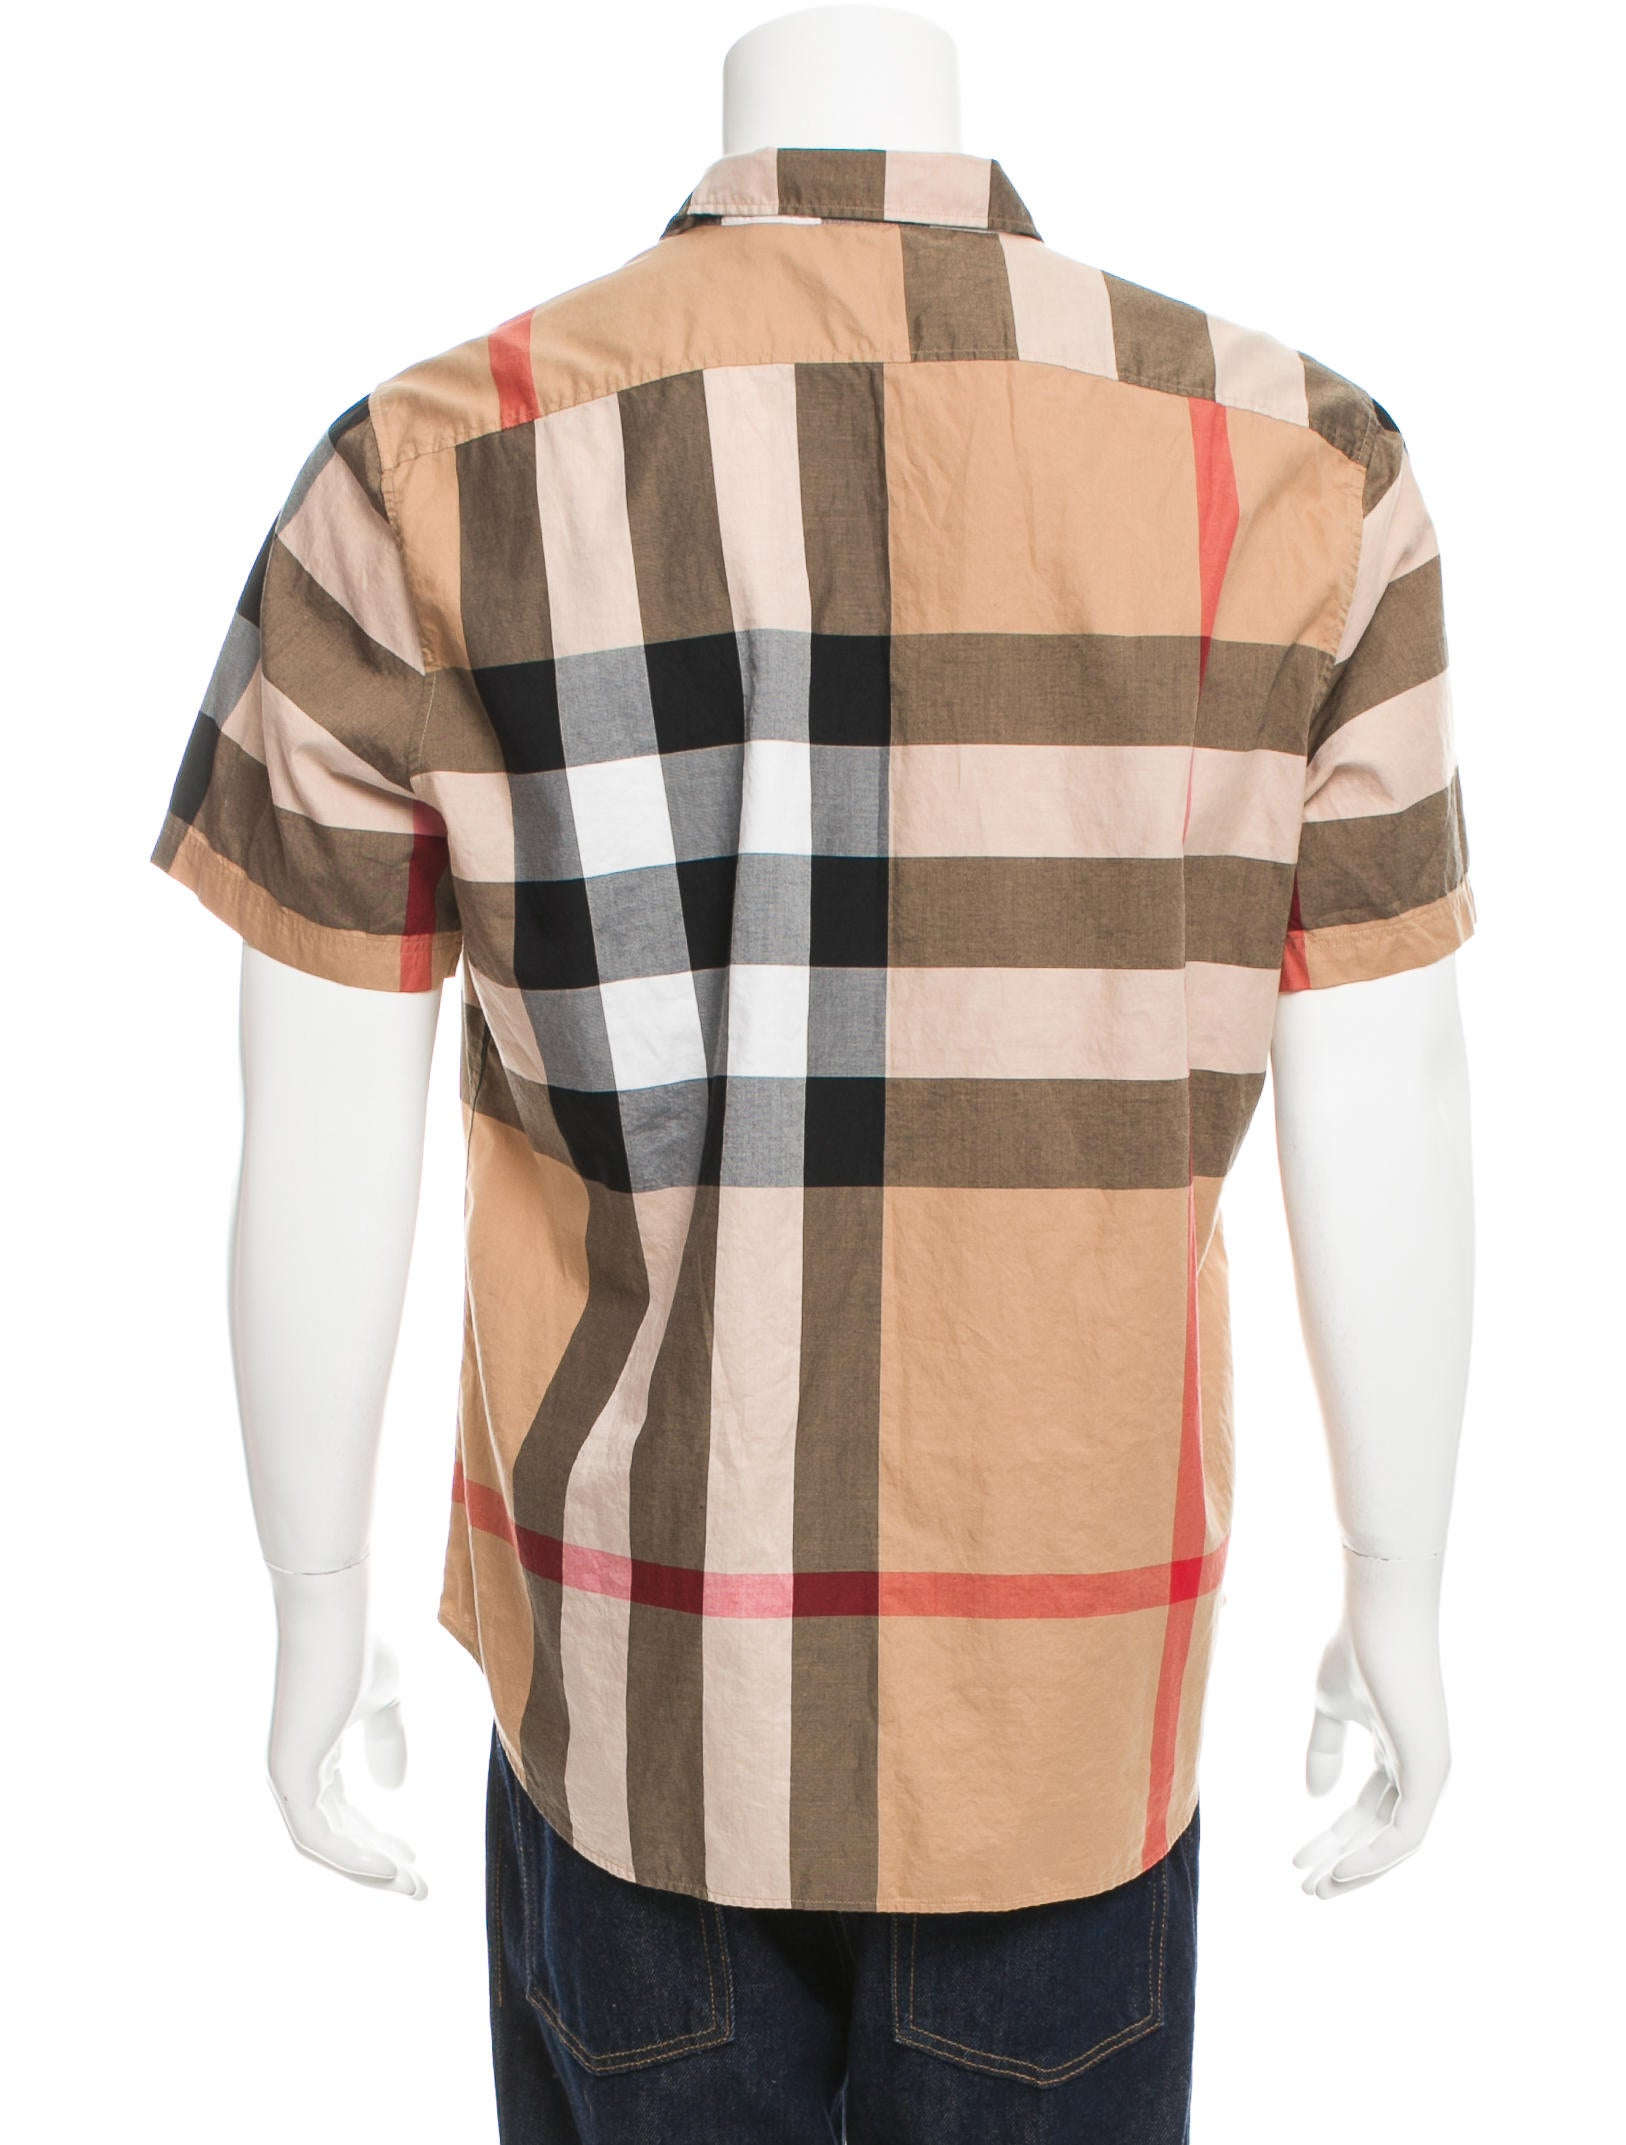 Burberry brit exploded check button up shirt clothing for Burberry brit checked shirt